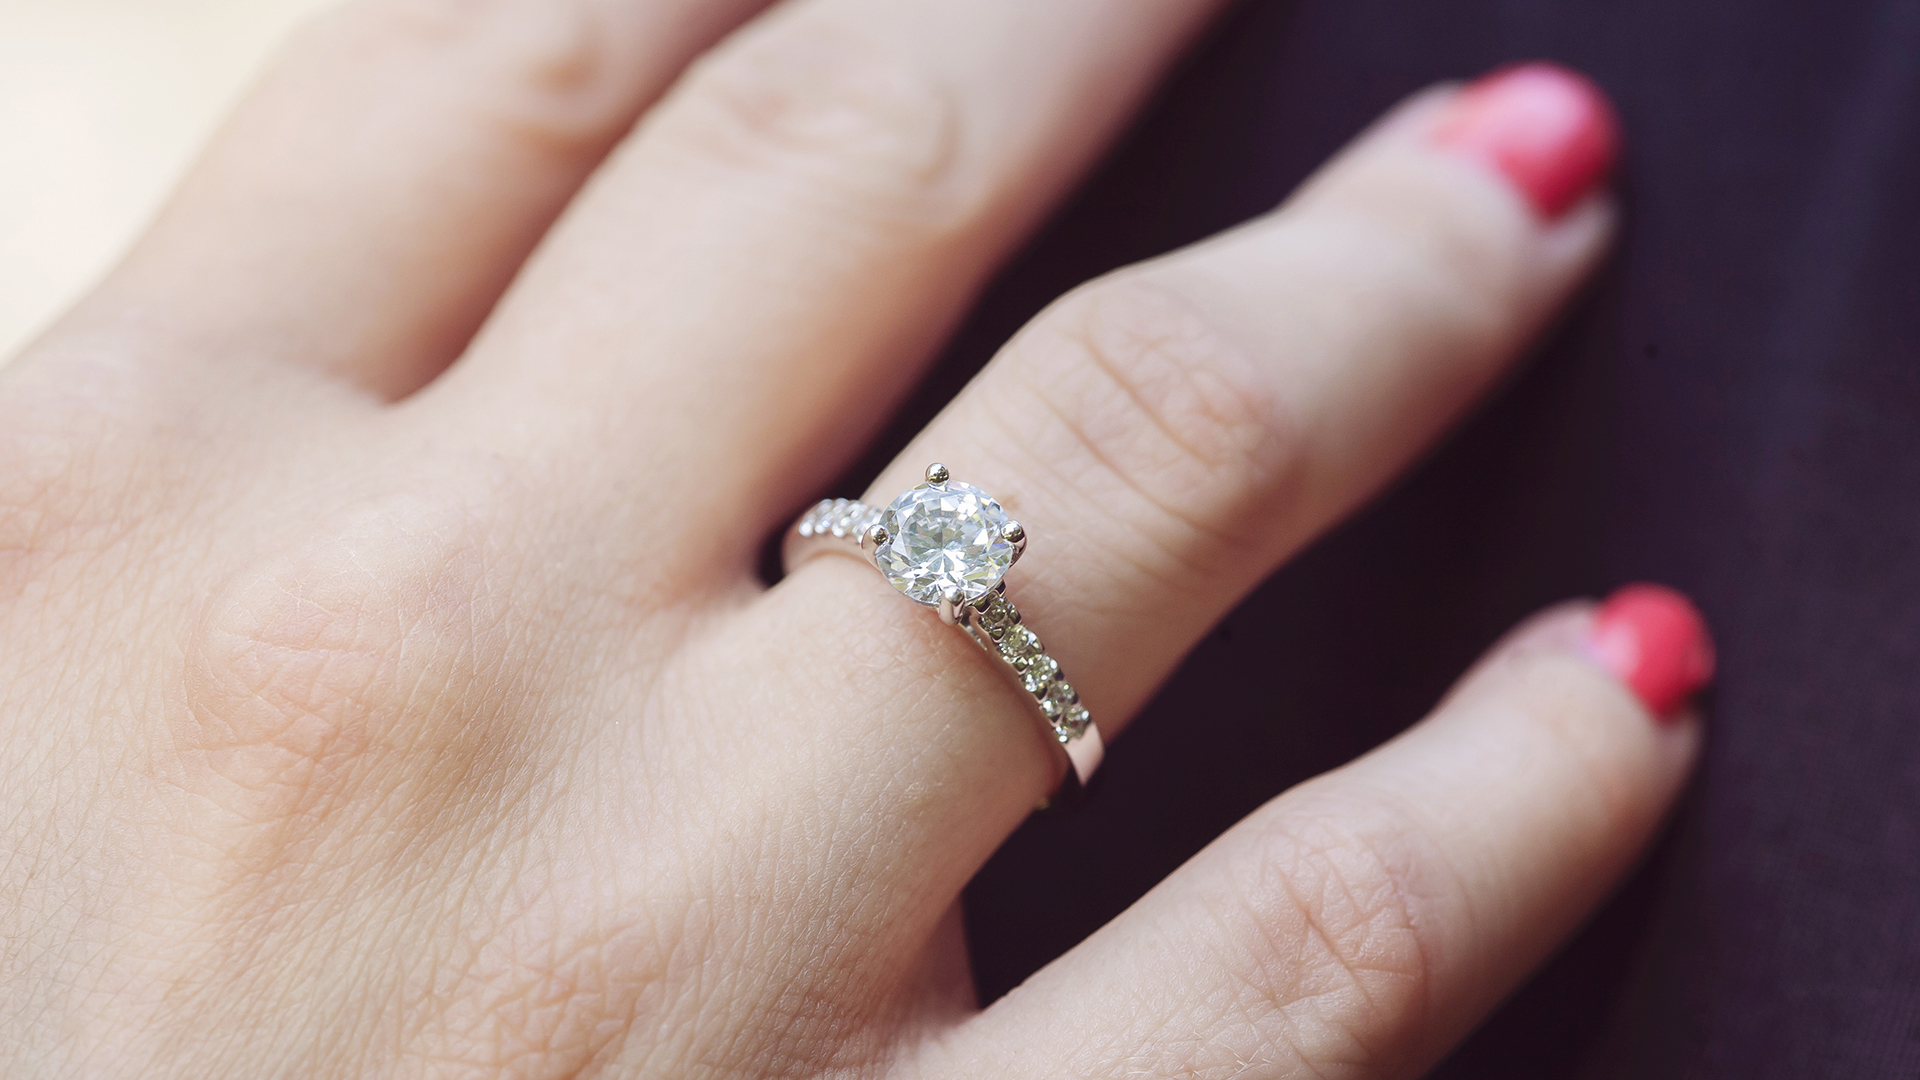 Man Tries To Crowdfund $15k Engagement Ring, Faces Backlash  Today